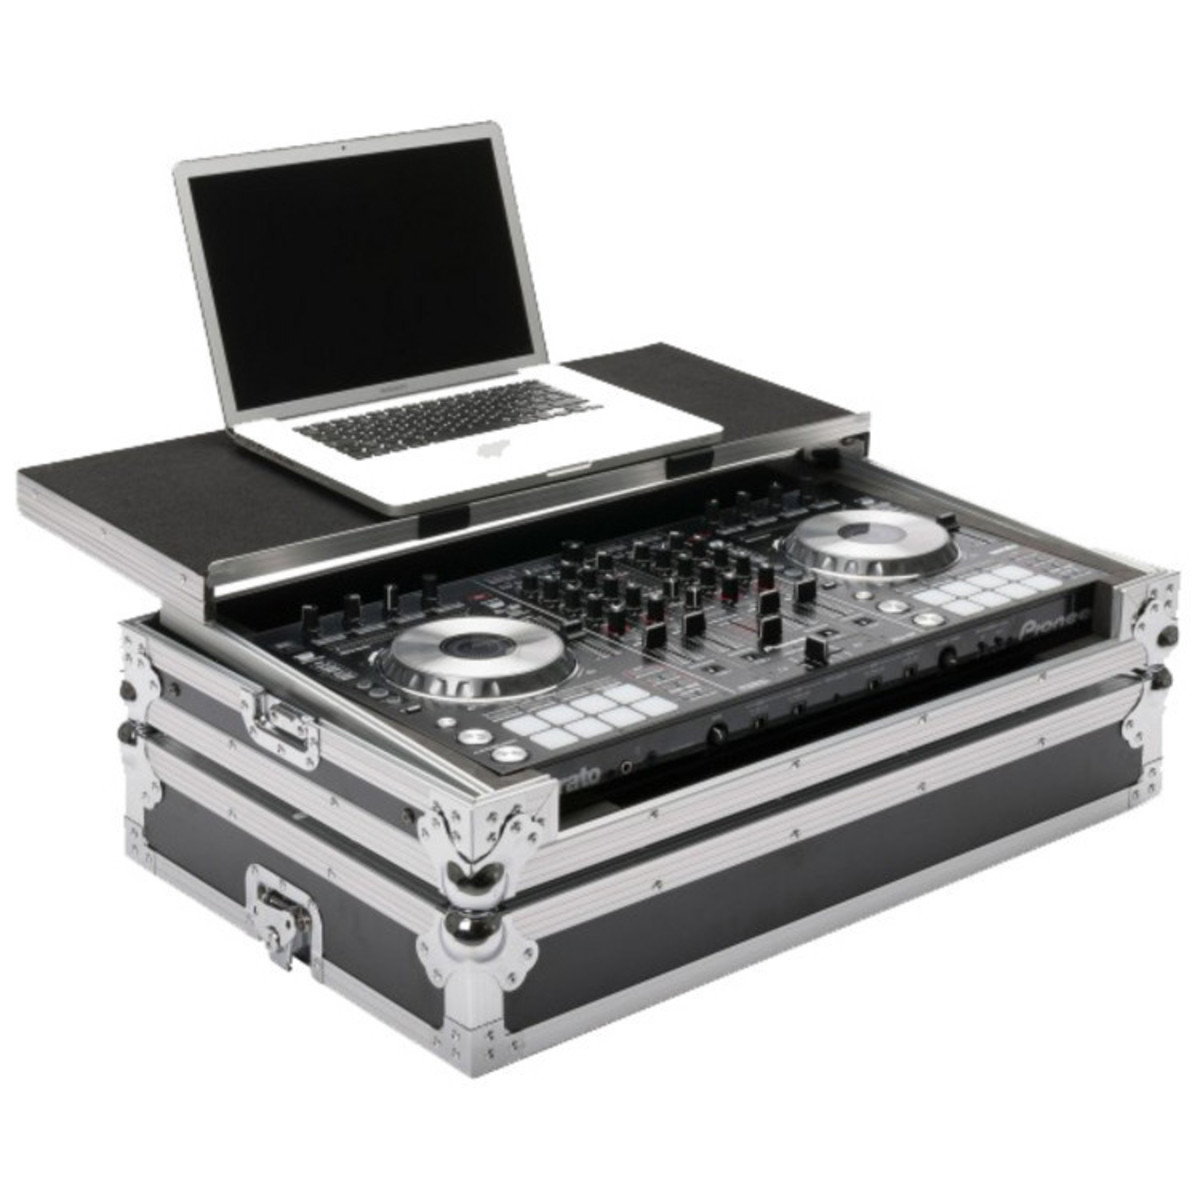 pioneer ddj sx 2 4 channel dj controller with magma workstation case at gear4music. Black Bedroom Furniture Sets. Home Design Ideas